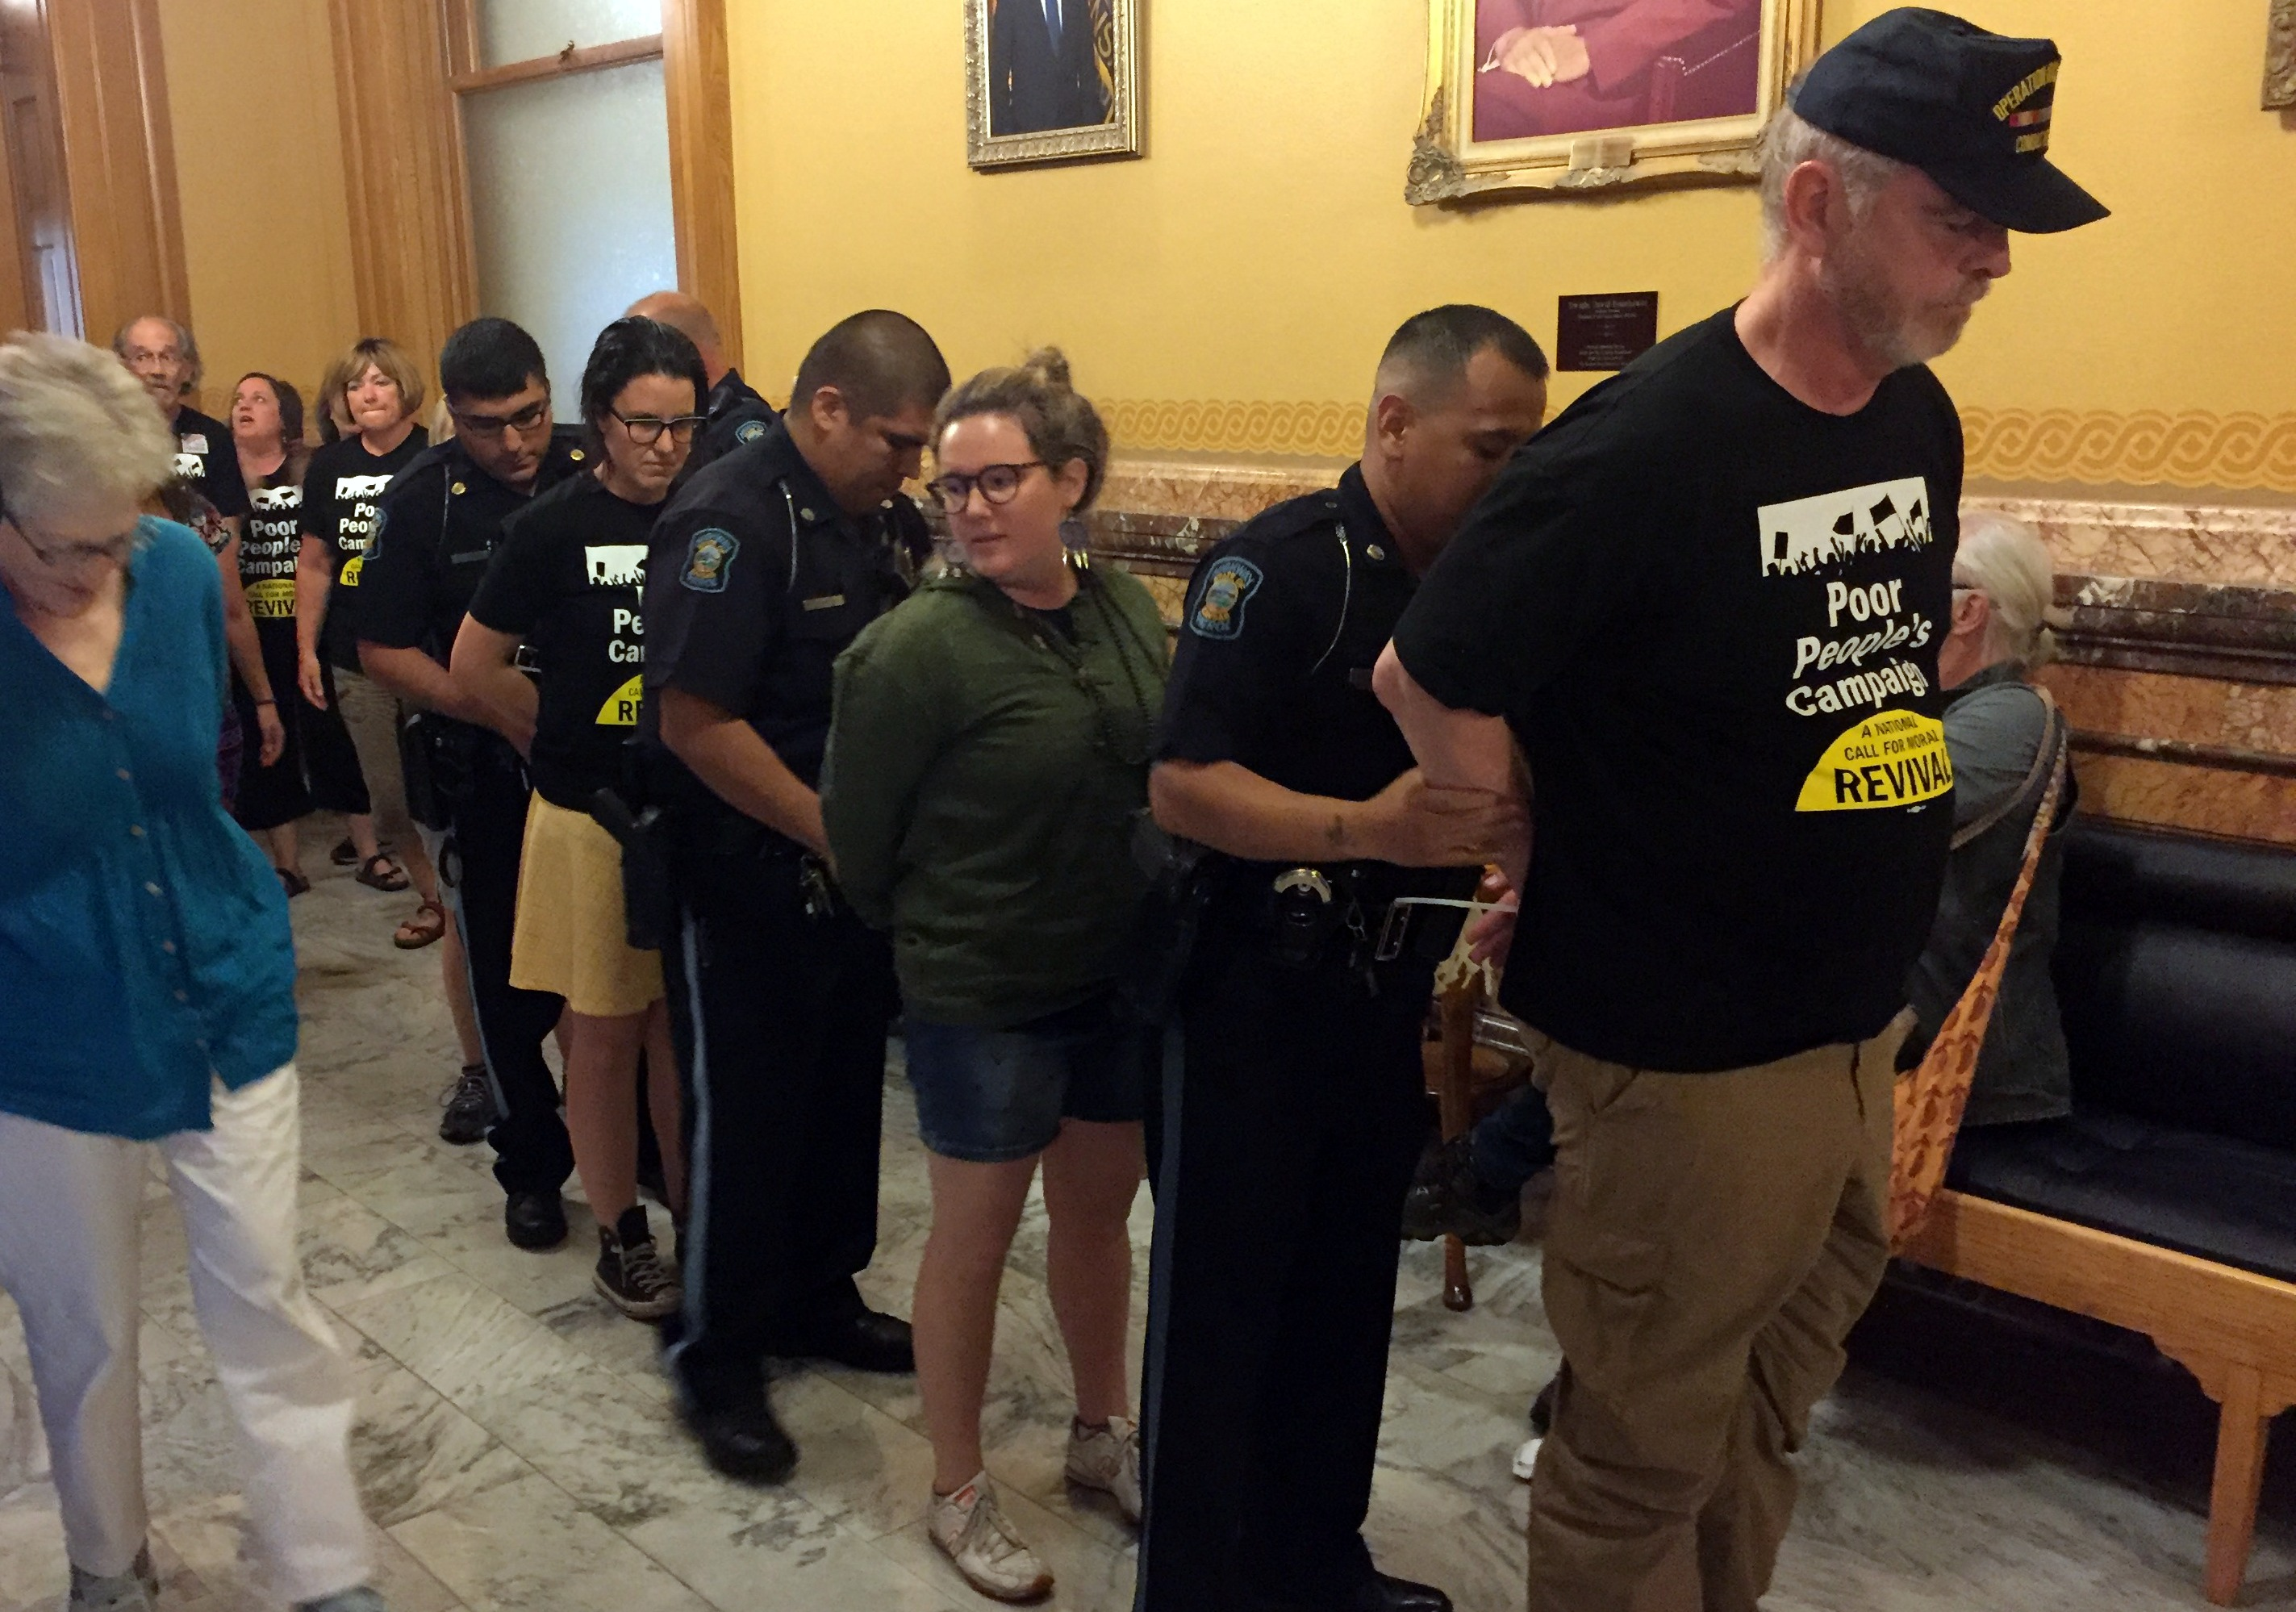 Police arrest protesters outside the governor's office. (Photo by Stephen Koranda)